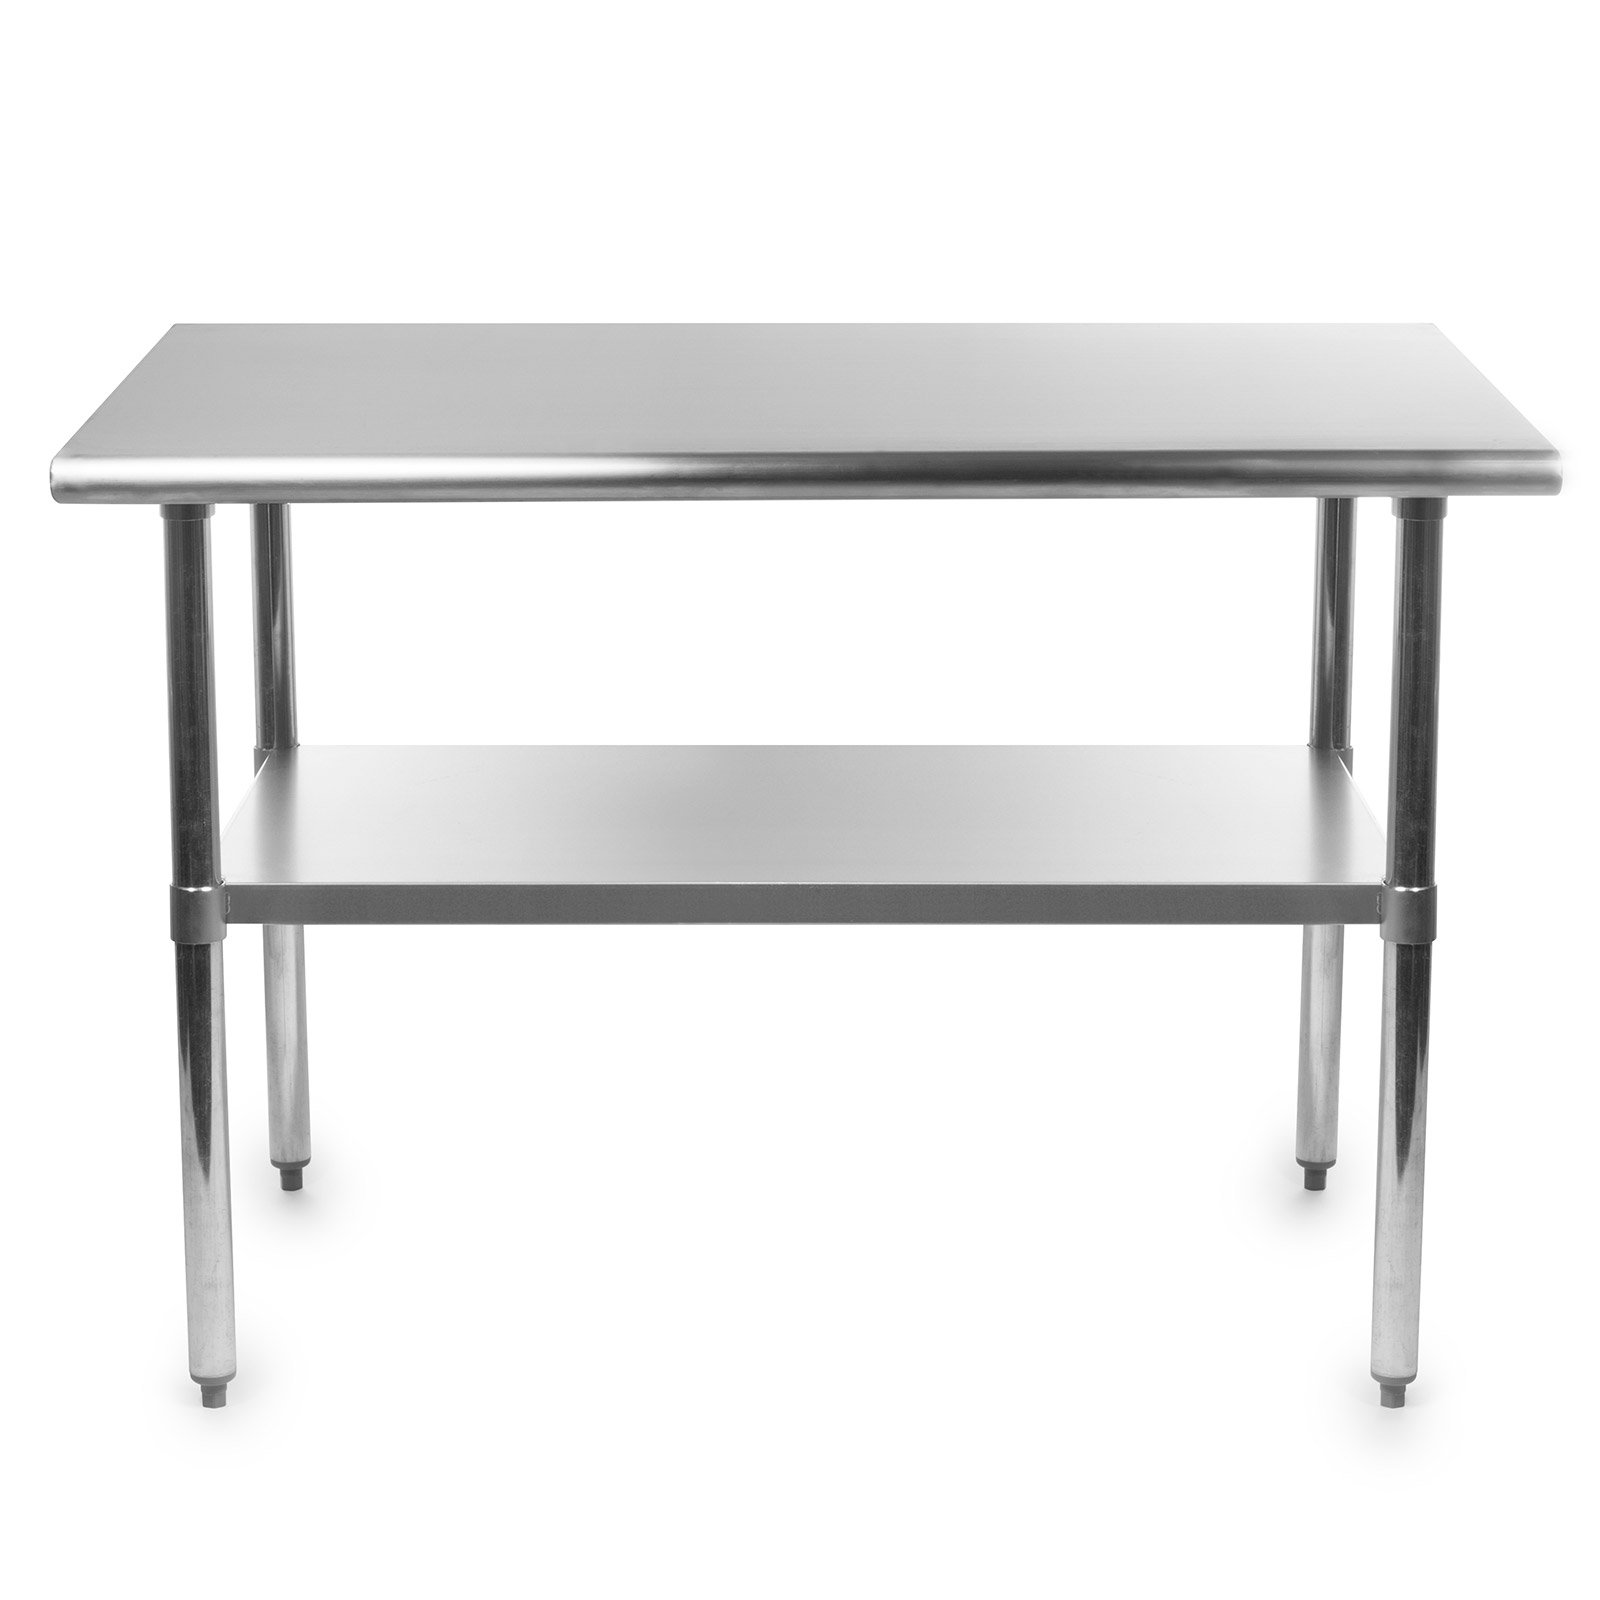 Gridmann NSF Stainless Steel Commercial Kitchen Prep & Work Table - 48 in. x 30 in. by Gridmann (Image #1)